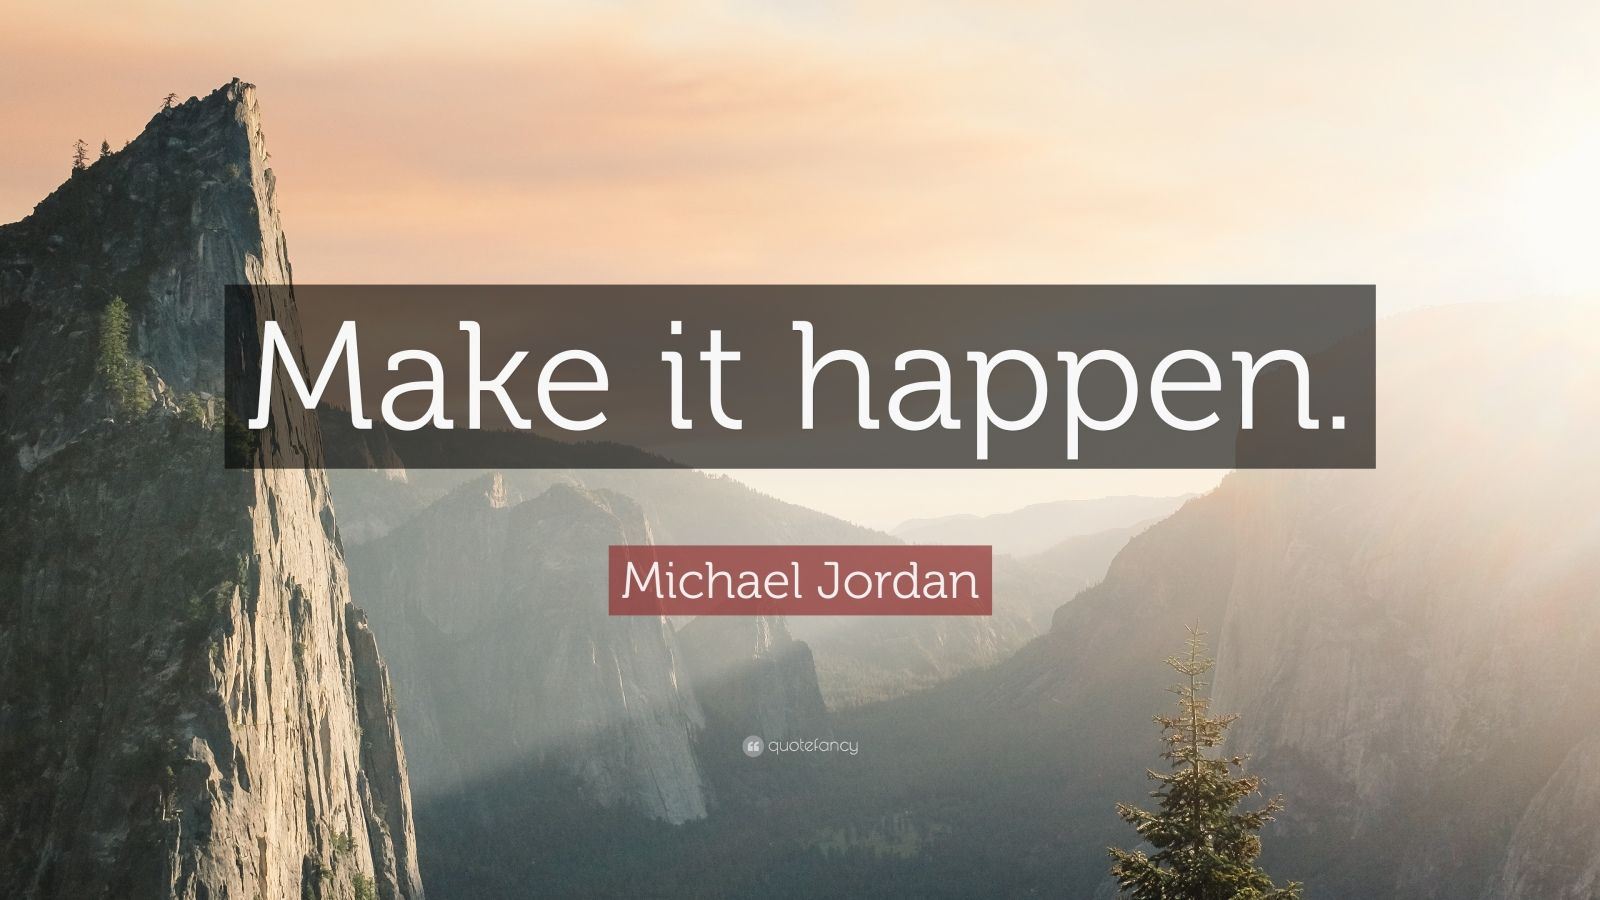 Beautiful Wallpapers With Inspirational Quotes Michael Jordan Quote Make It Happen 31 Wallpapers